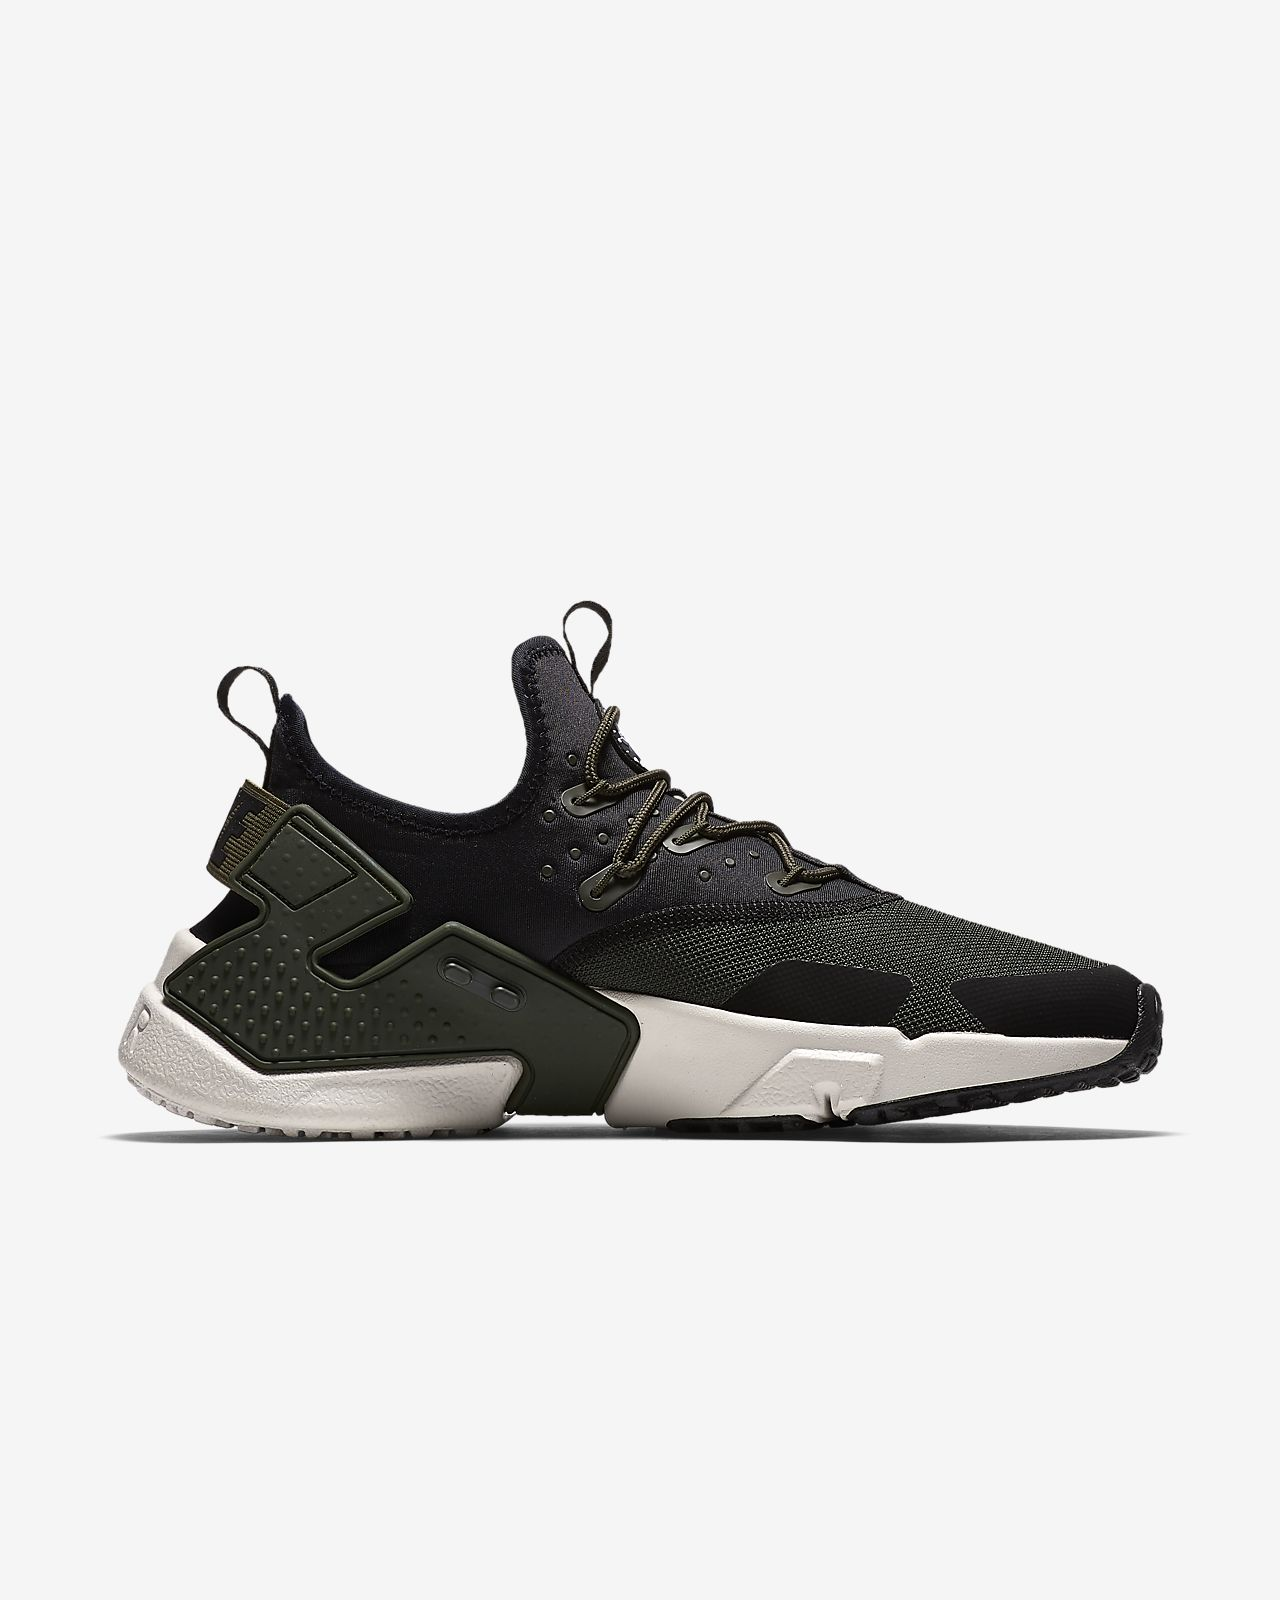 Basket mode - Sneakers NIKE Air Huarache Drift Noir Blanc AH7334 003 t5DOUE